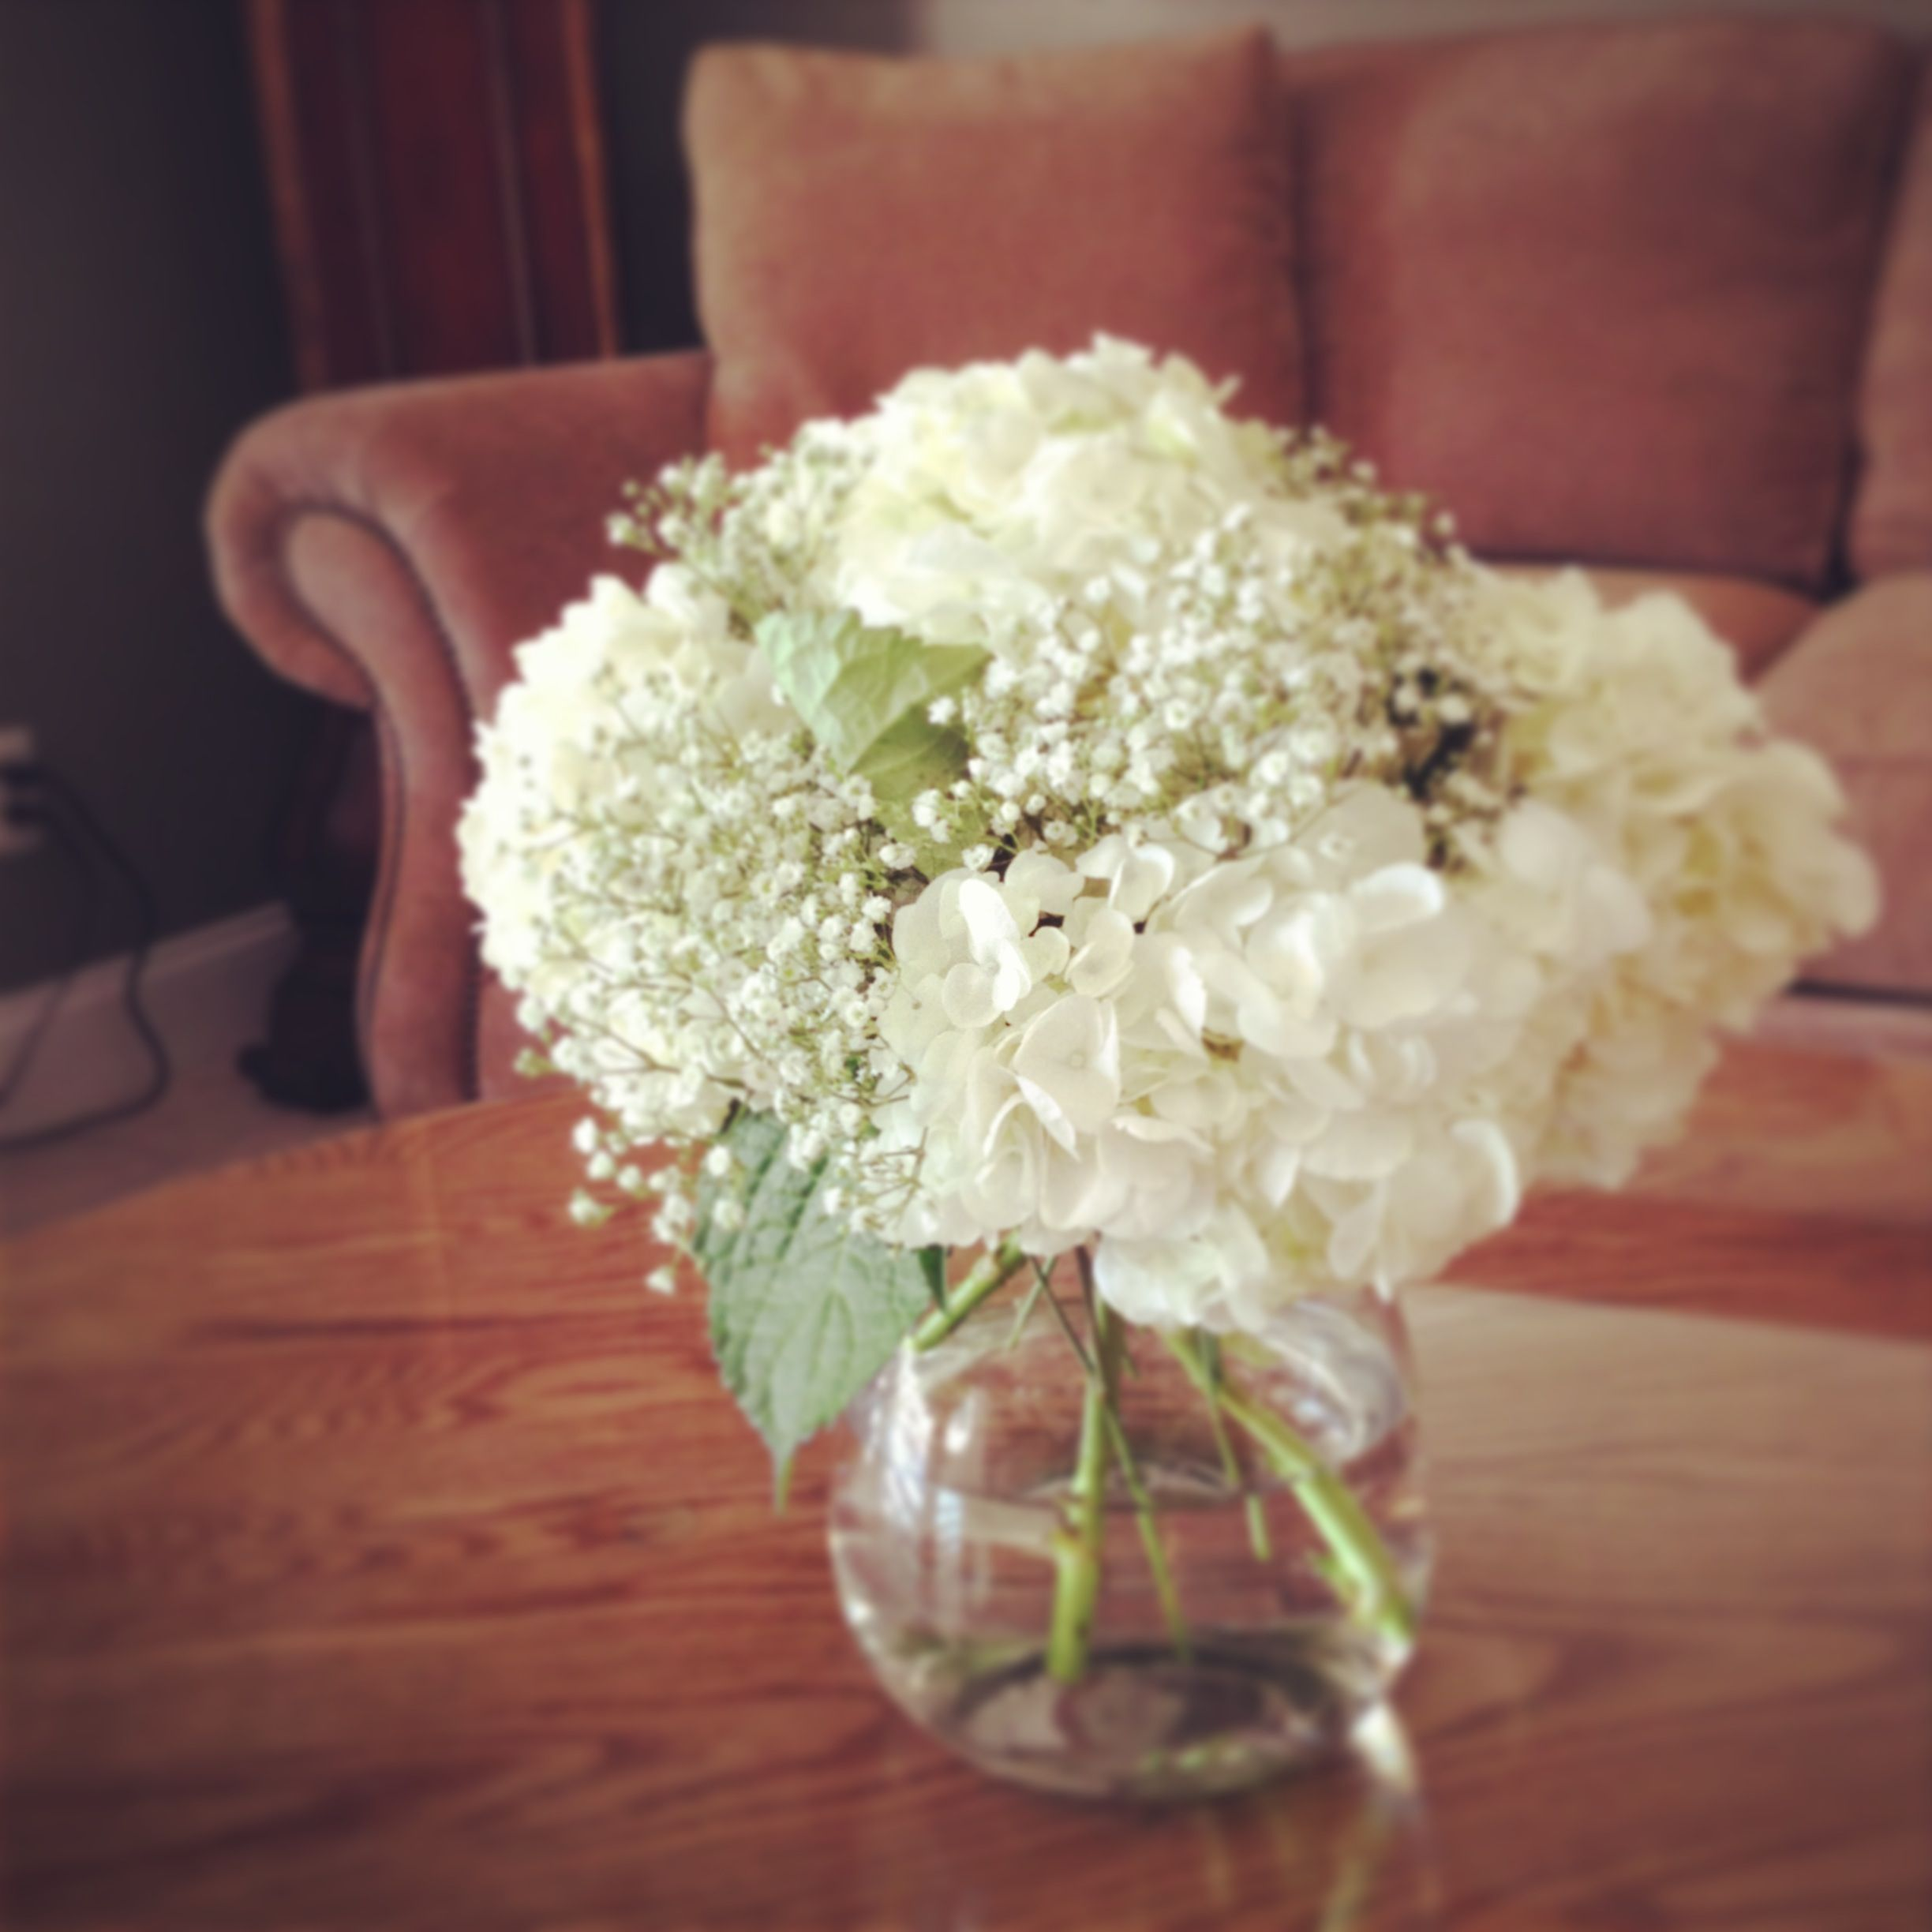 Wedding White Hydrangea: White Hydrangea And Baby's Breath